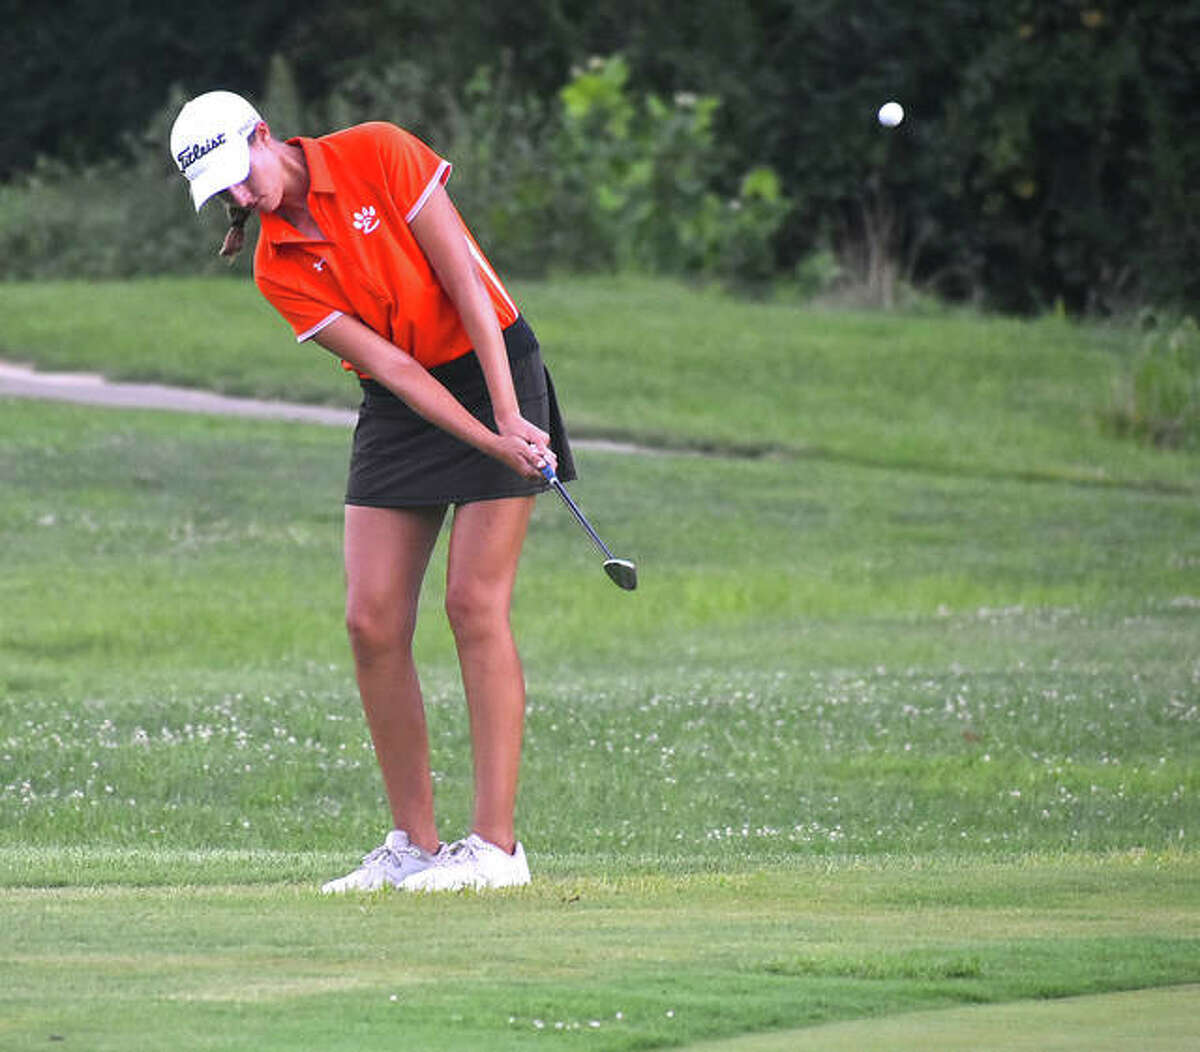 Edwardsville's Nicole Johnson chips onto the green on No. 4 at Woodlands Golf Club during the Alton Kick-Off Scramble/Shamble on Saturday in Alton.